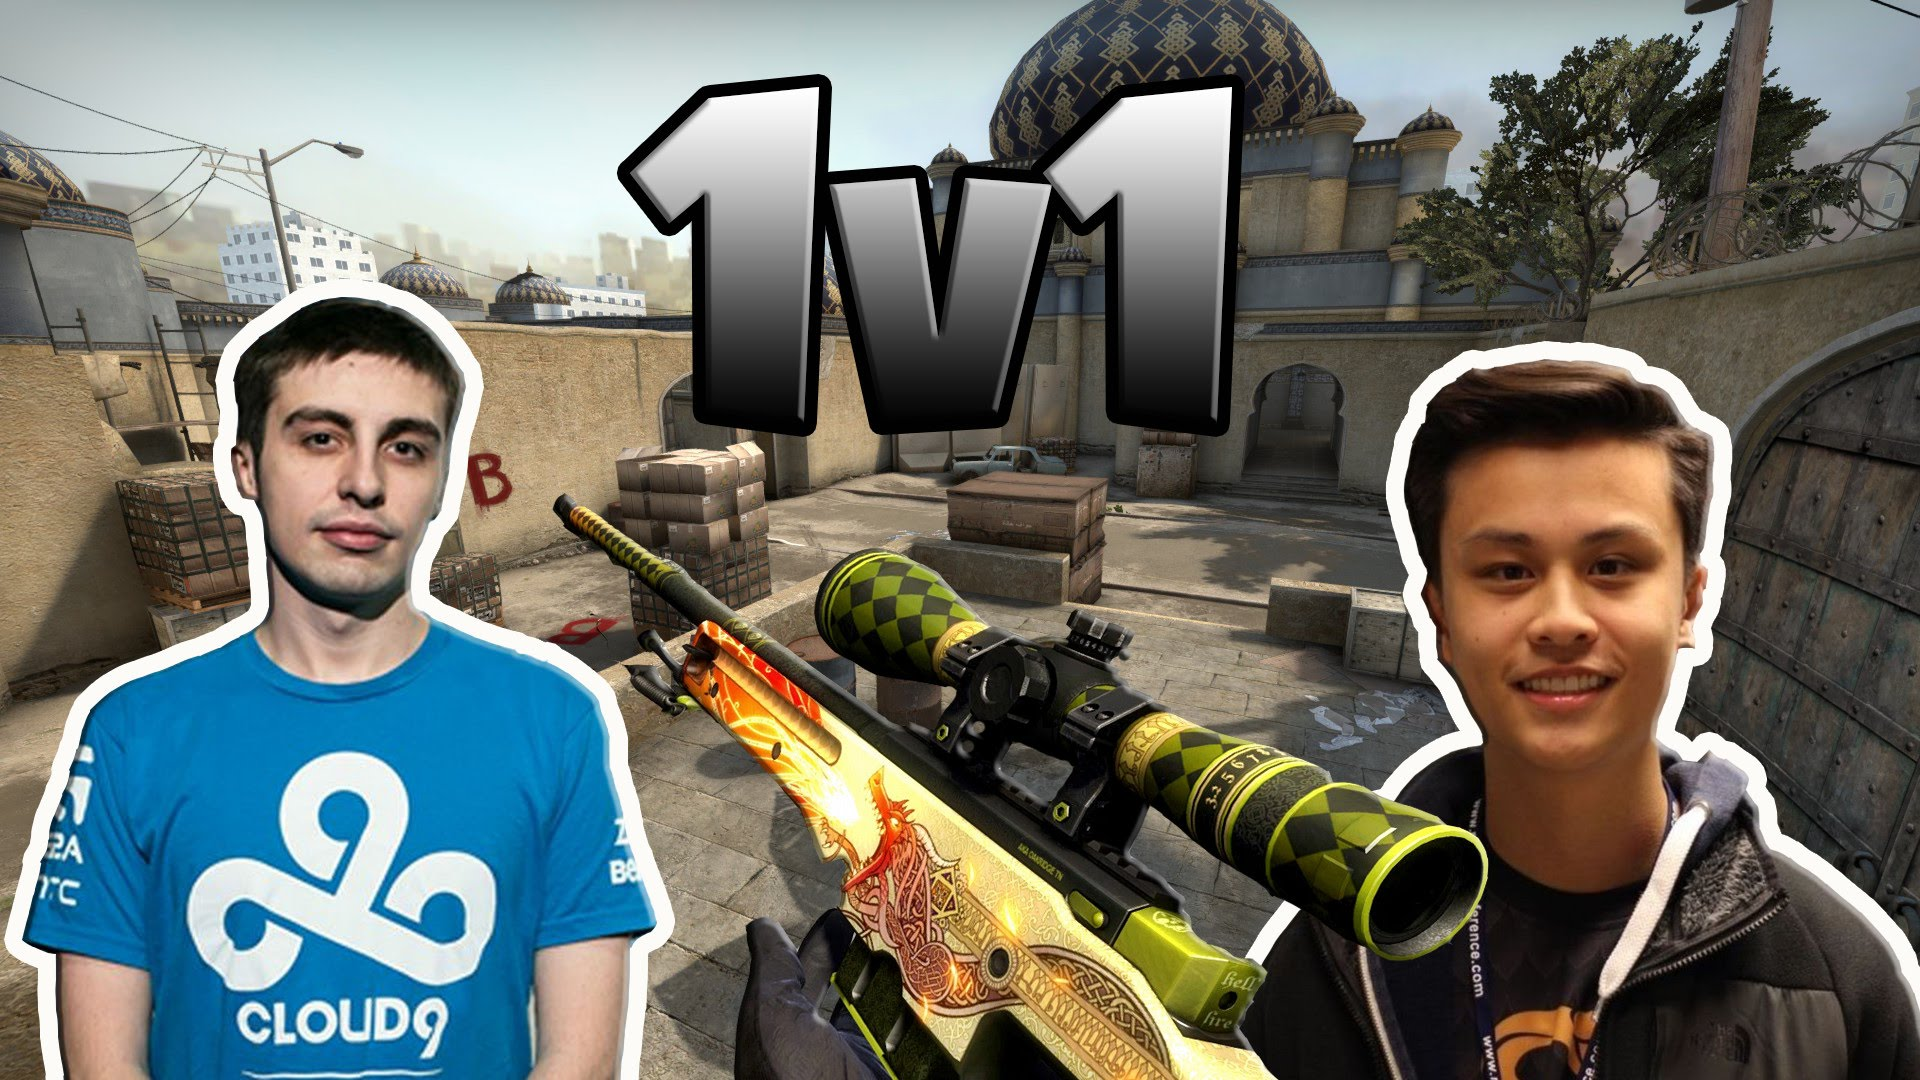 Stewie2k: 10 most Interesting facts you need to know about